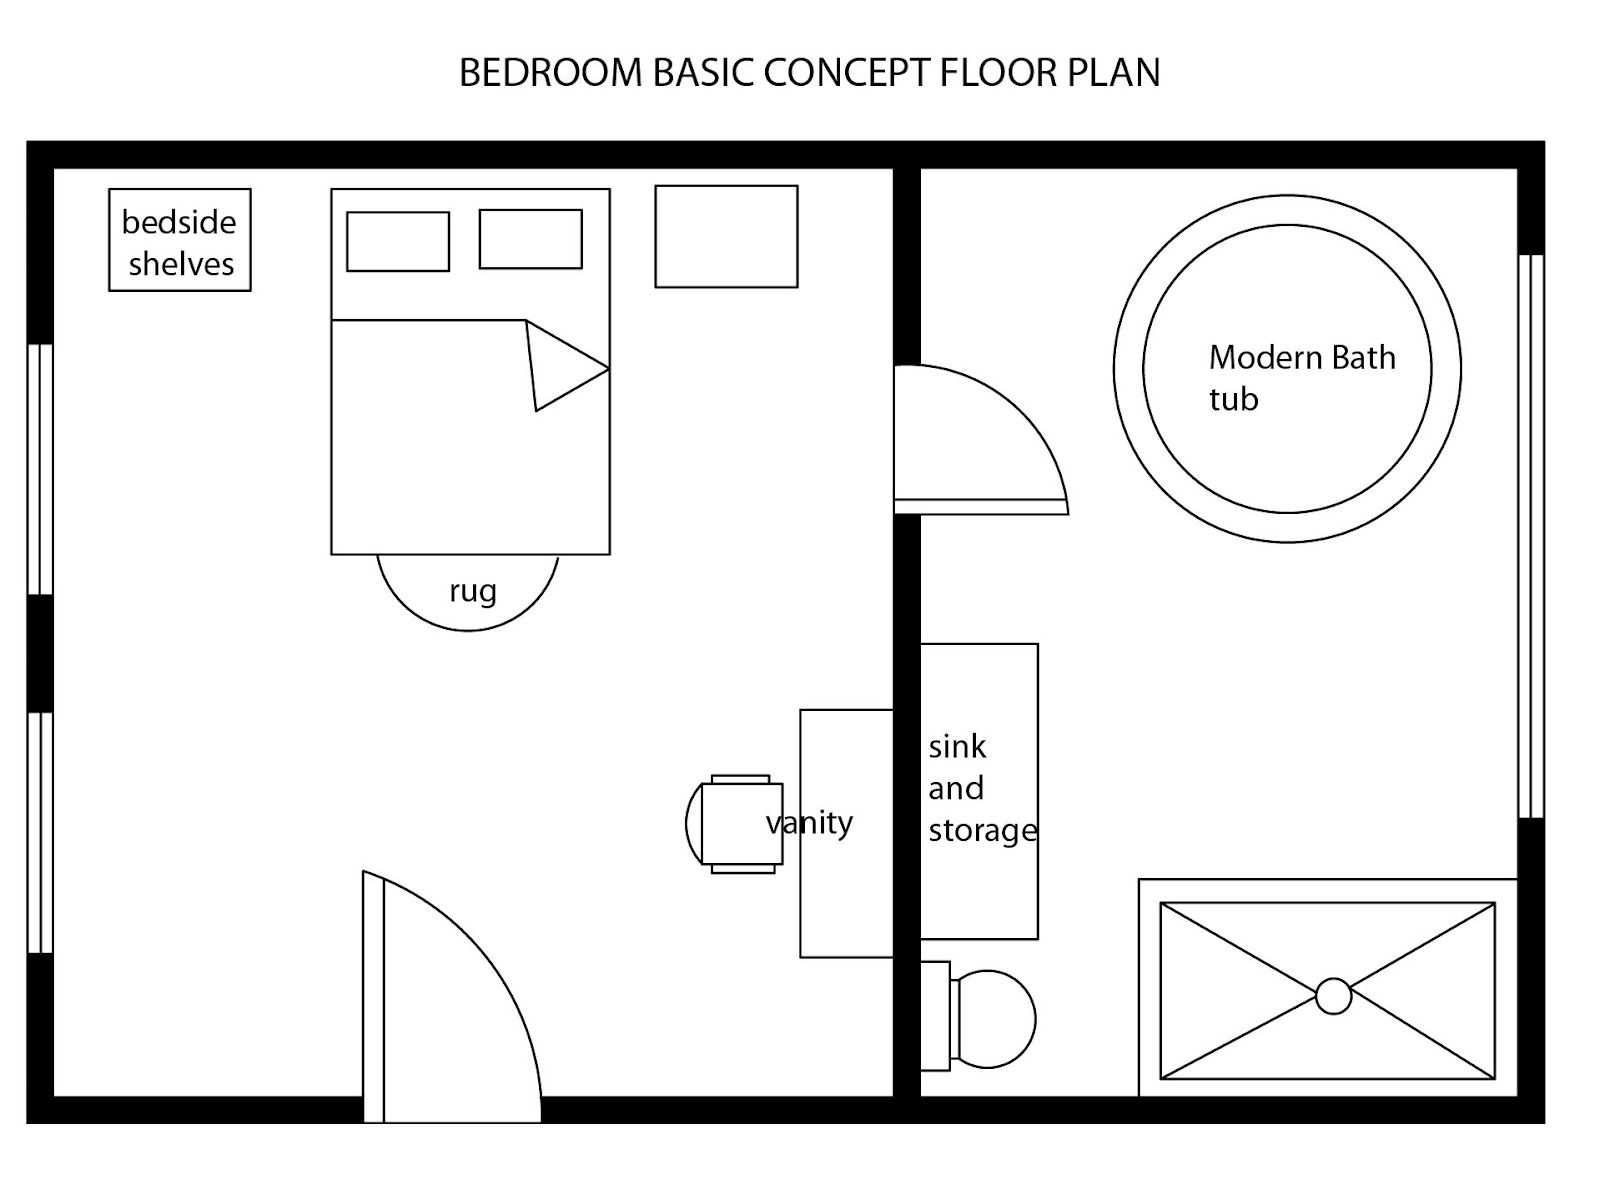 simple 1 bedroom floor plans design ideas 20172018 Pinterest